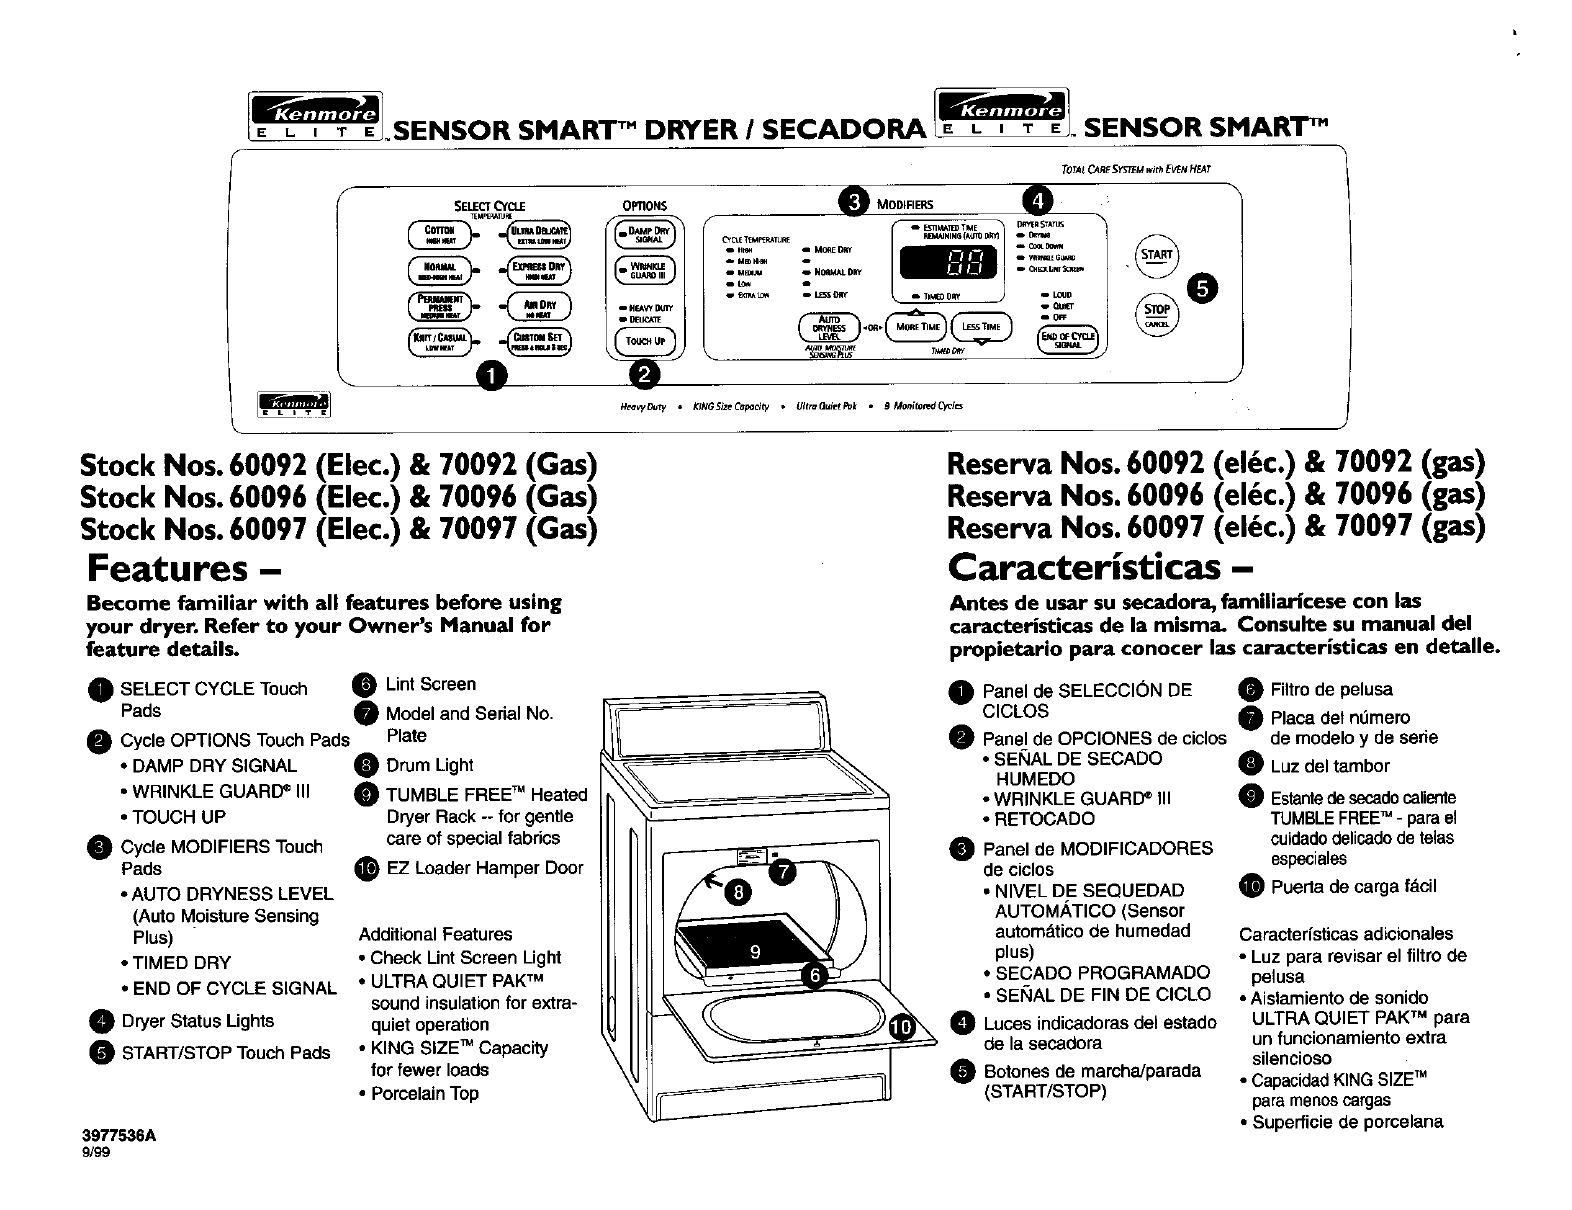 c71c25bf cc9e 4533 a820 91b5258317a8 bg1 kenmore clothes dryer 60092 user guide manualsonline com kenmore dryer wiring schematic at gsmx.co